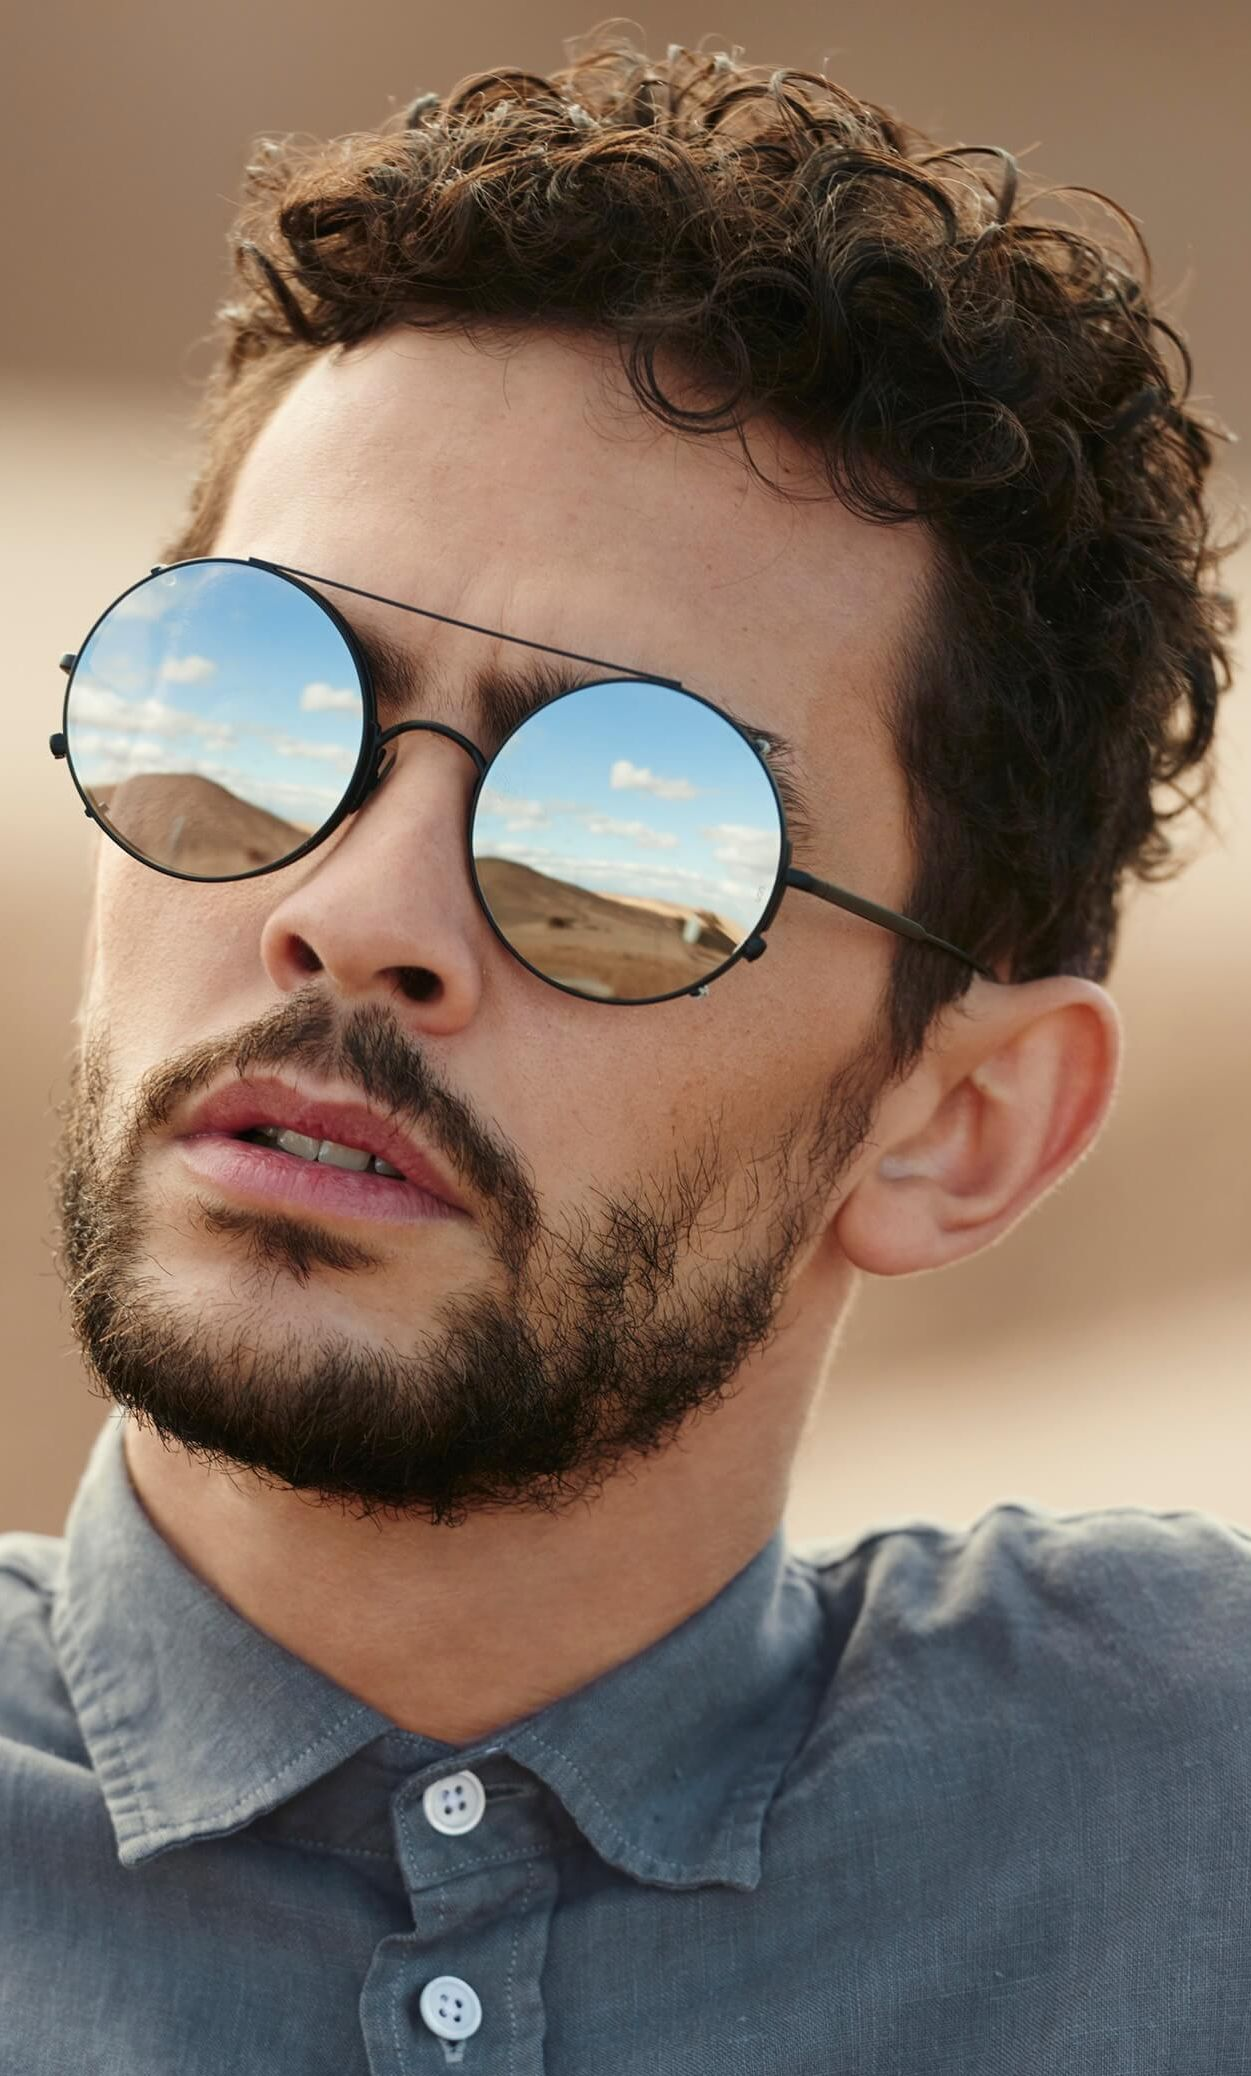 ea56cfce1a3 Sunglasses Archives - Trends For Trends.  sunglasses Mirrored Sunglasses  Mens